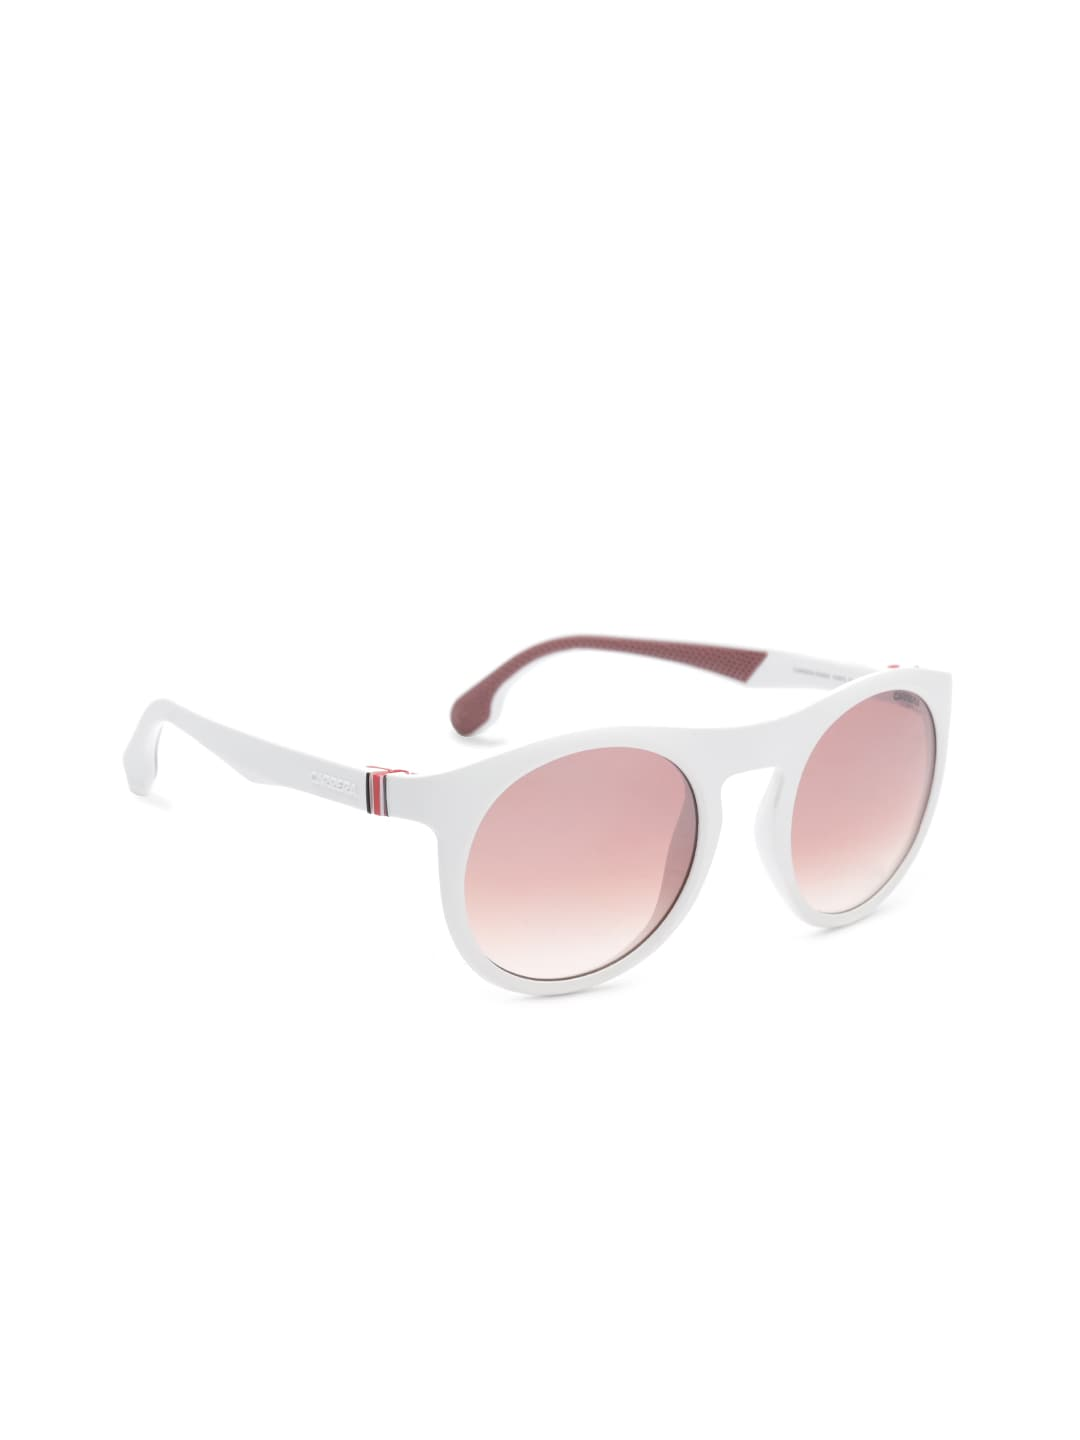 2f828d83c593 Carrera Mirrored Sunglasses - Buy Carrera Mirrored Sunglasses online in  India